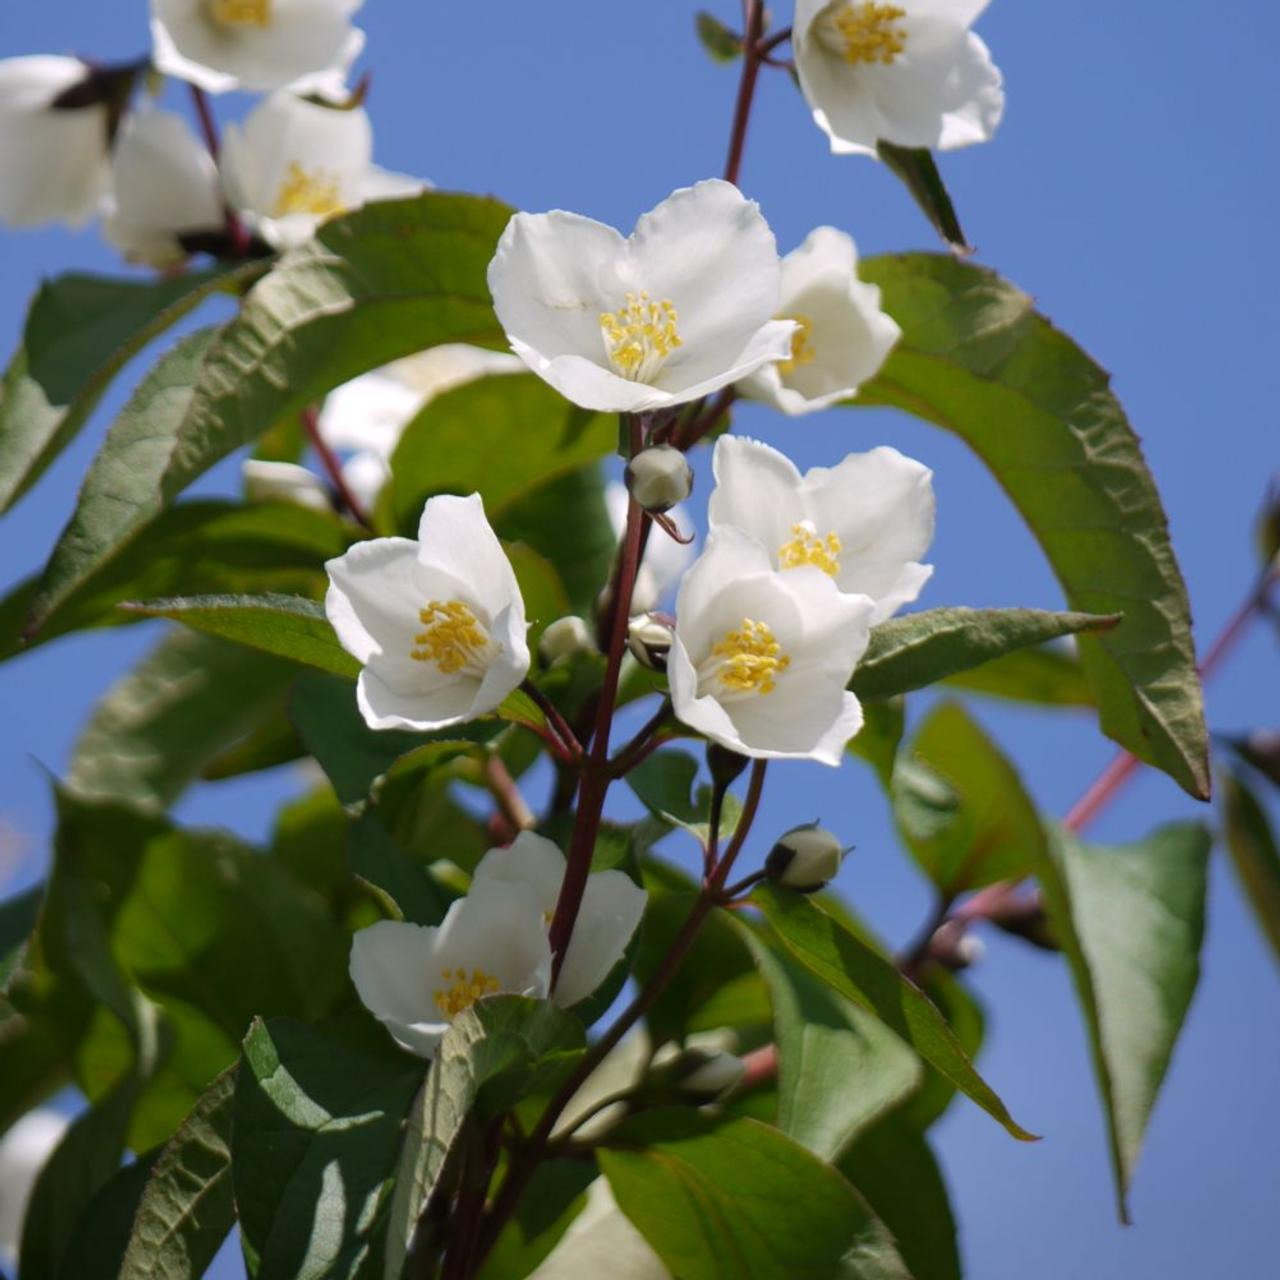 Philadelphus 'Starbright' (35525)